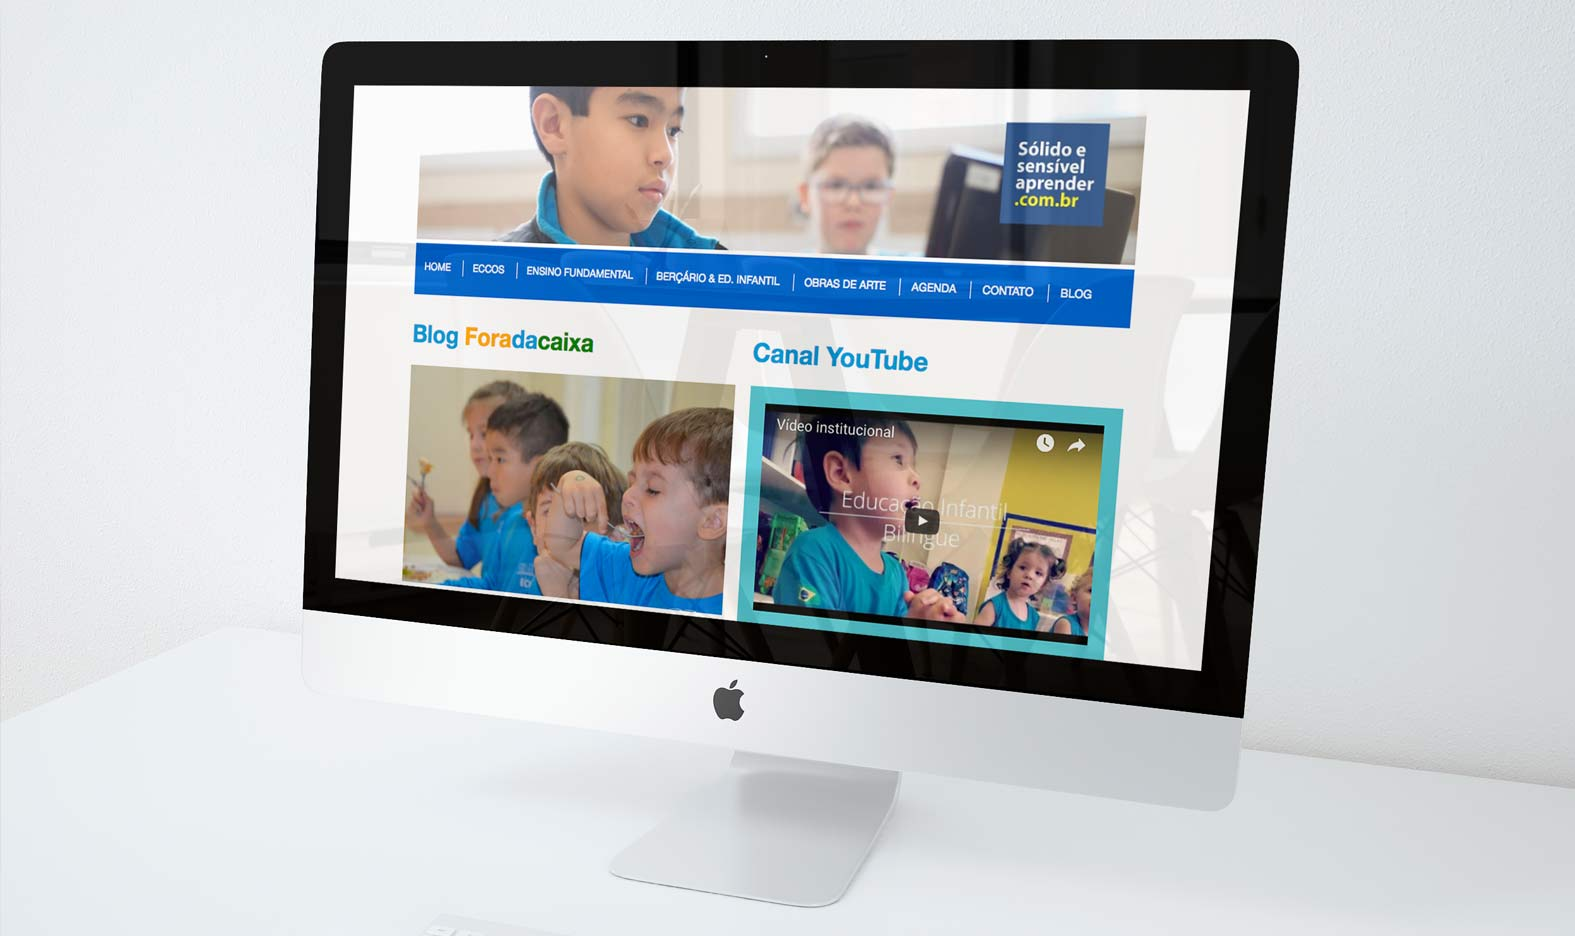 Website for School Colégio Eccos. Responsive layout from Photoshop to Wordpress; Website built using WordPress; HTML, CSS, MySQL; Domain Setup (Hosting, Emails, Database); Google Certificated - Mobile Friendly; Newsletter integration; Google Analytics, Search Console, Sitemap.